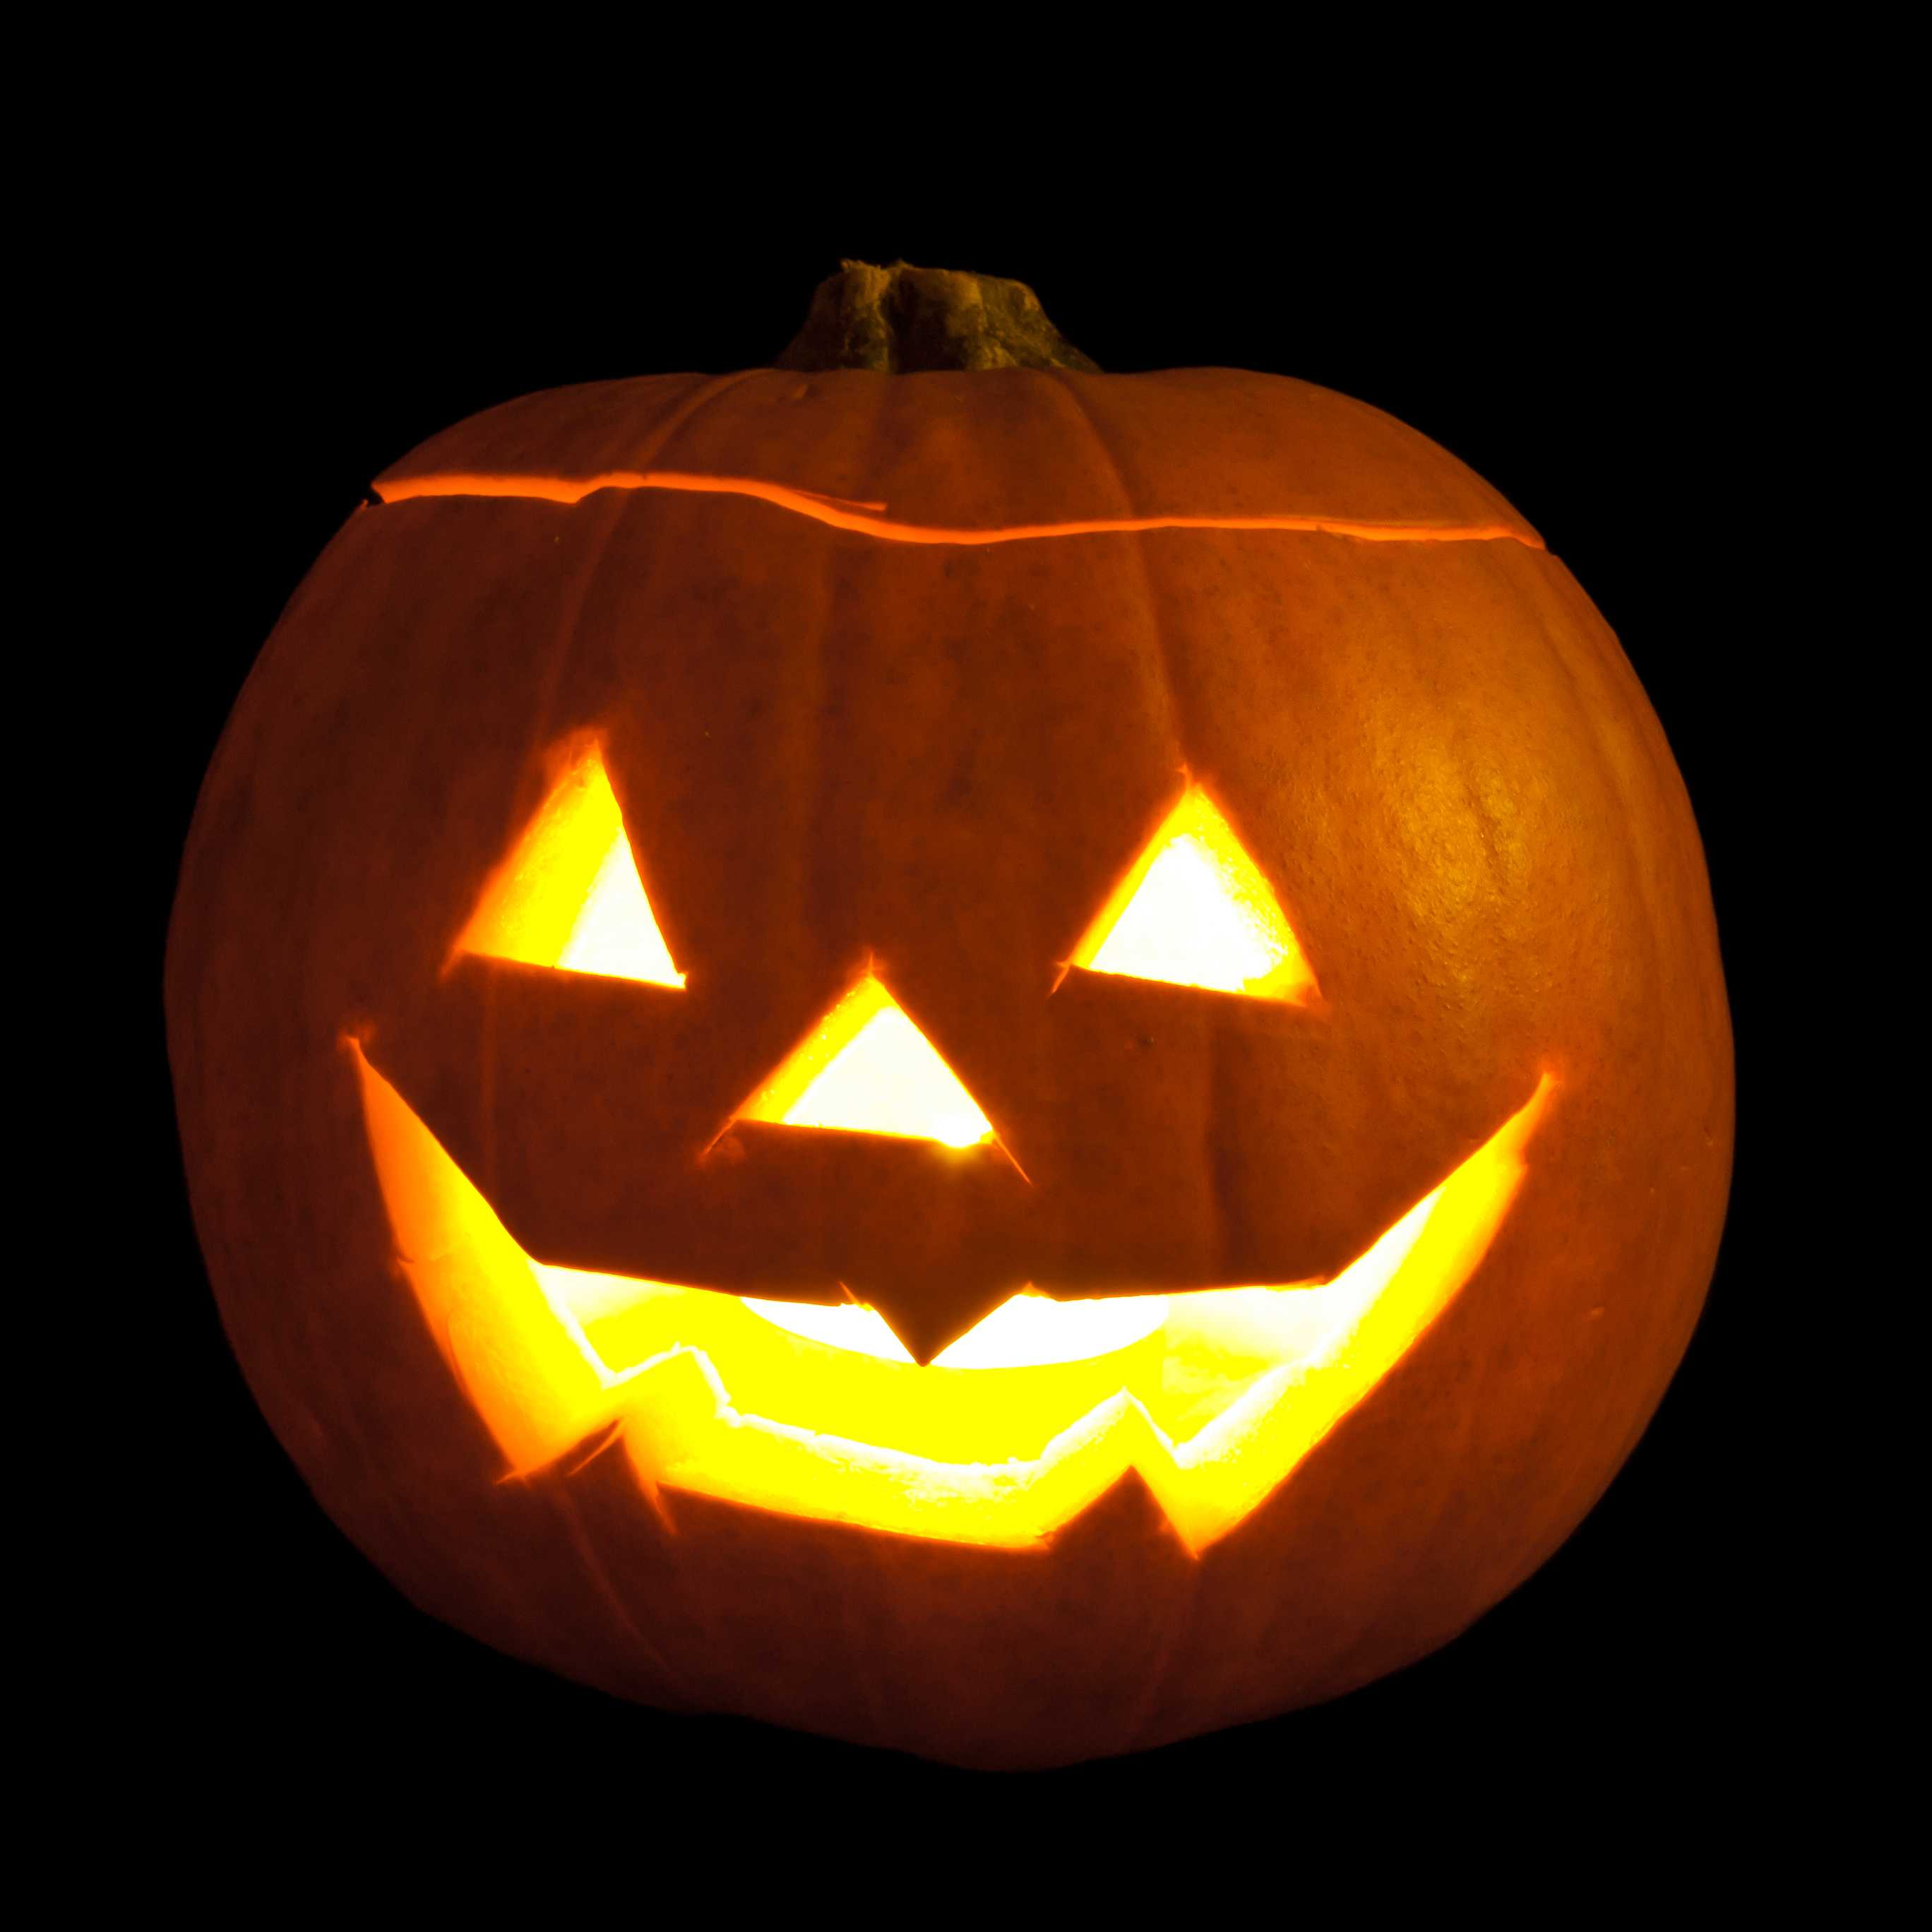 Jack-o'-lantern carved from pumpkins and lit with tea lights